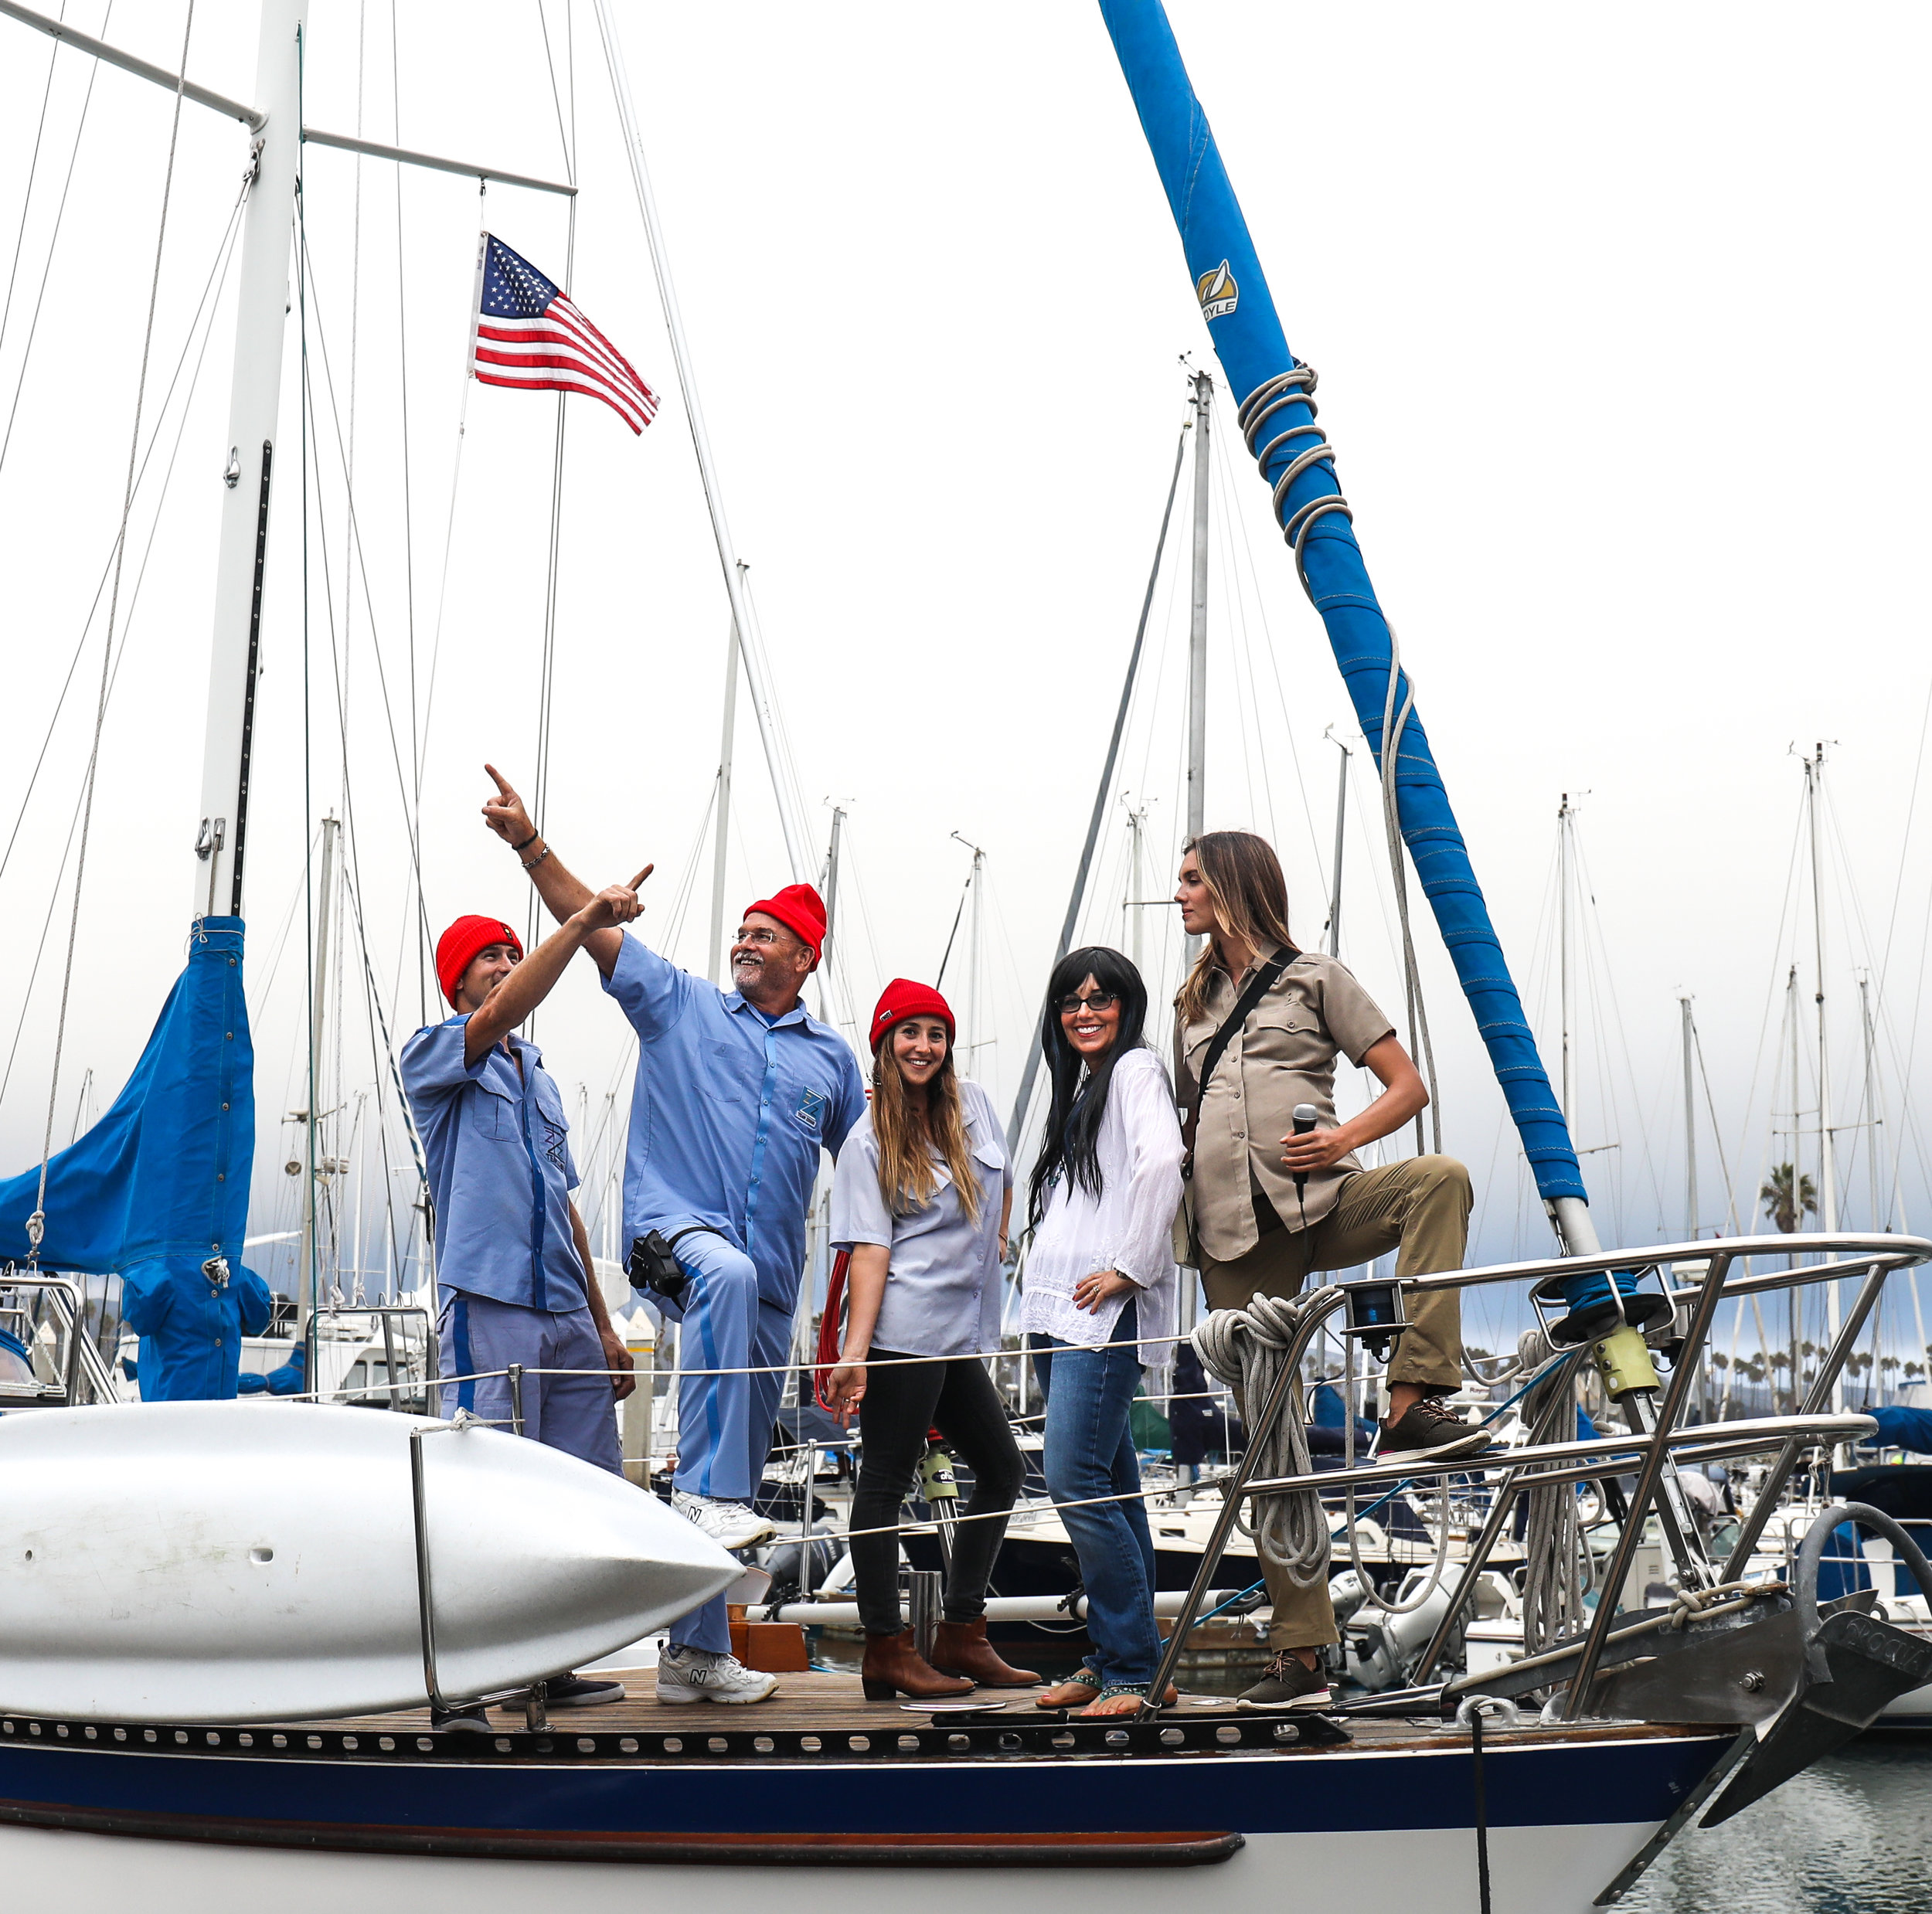 My family as the crew from The Life Aquatic!